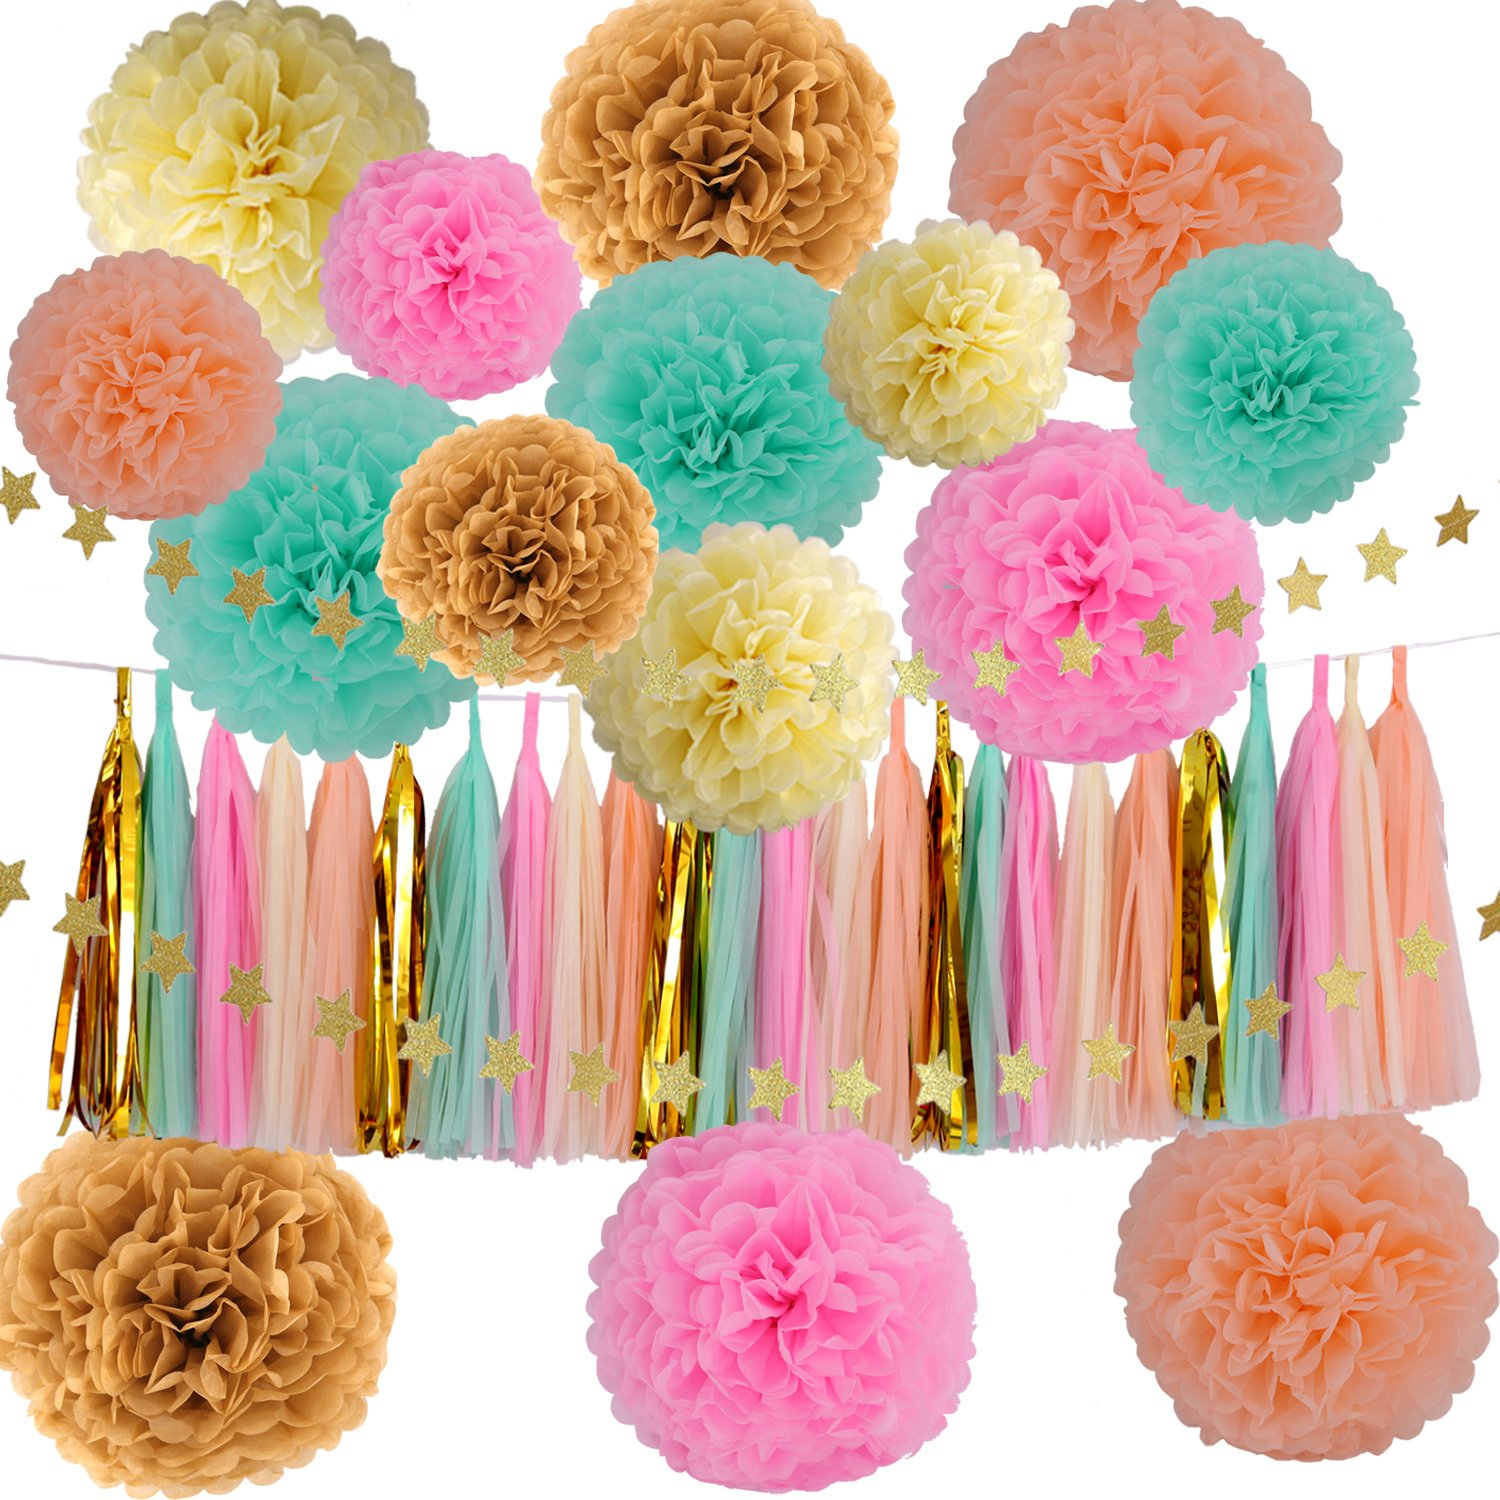 Wedding Party Decorations 42 pcs Gold Mint Green Pink Peach Cream Tissue Paper Pom Poms Flowers Tissue Tassel Garland Gold Glitter Five-Pointed Star Garland Kit by KUYO